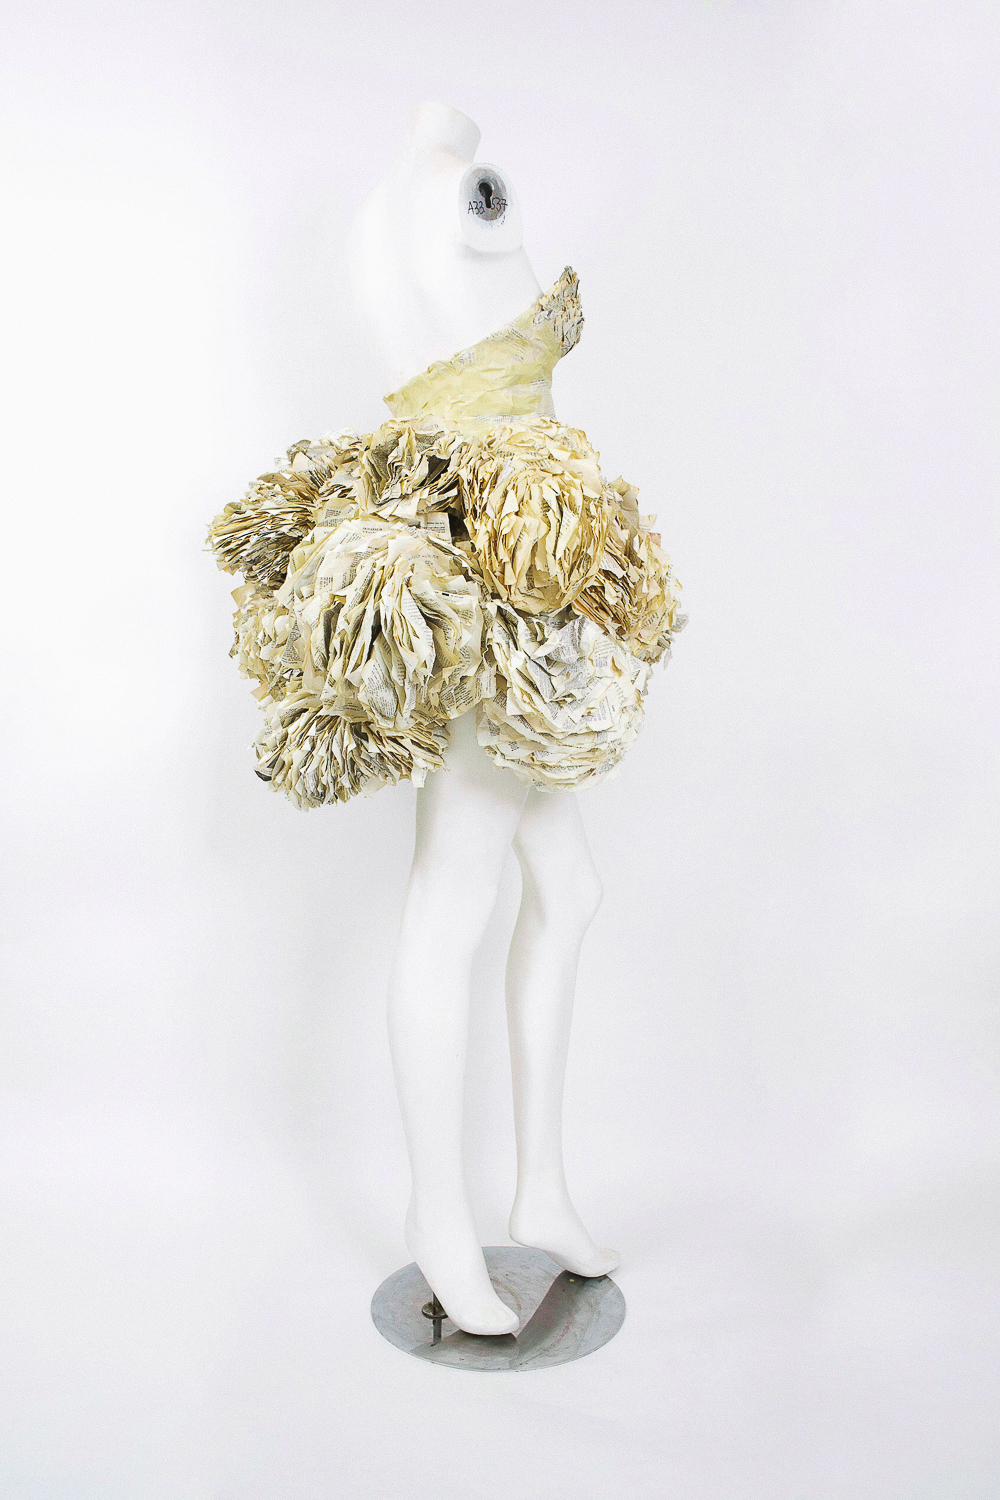 stasea_dohoney_paper_dress_healdsburg